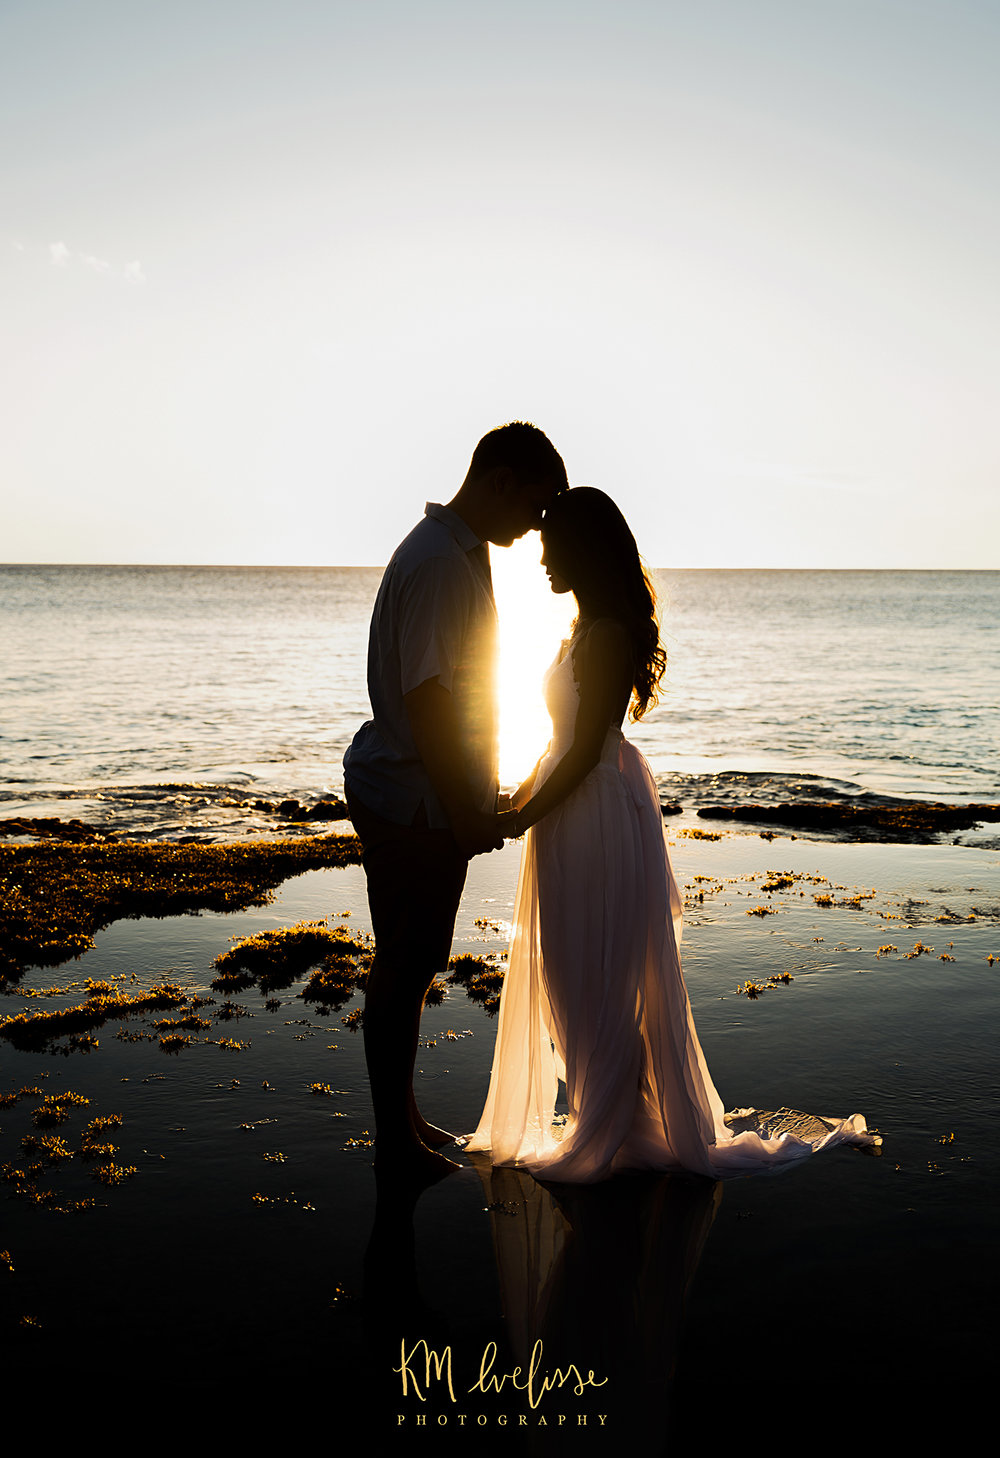 Silhouette shot at Makua Beach in Oahu Hawaii by KM Ivelisse Photography. This couples session was magical and the sunset did not disappoint.